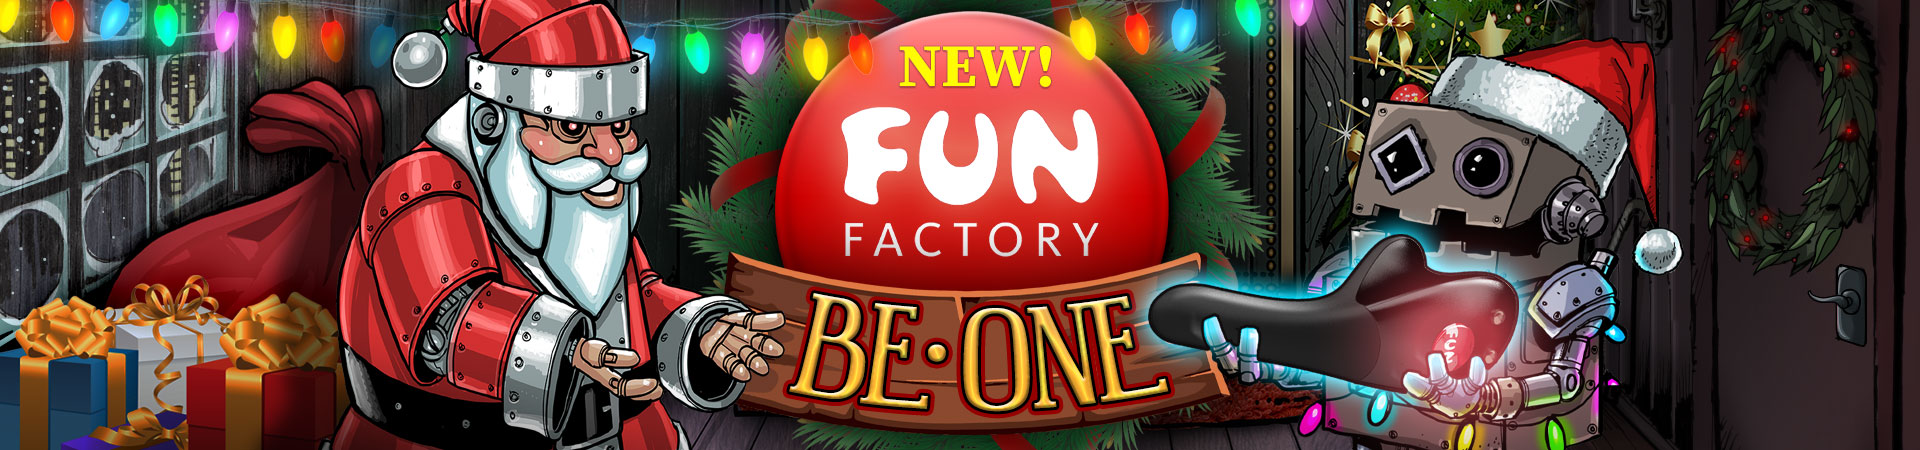 New Fun Factory BE-ONE!